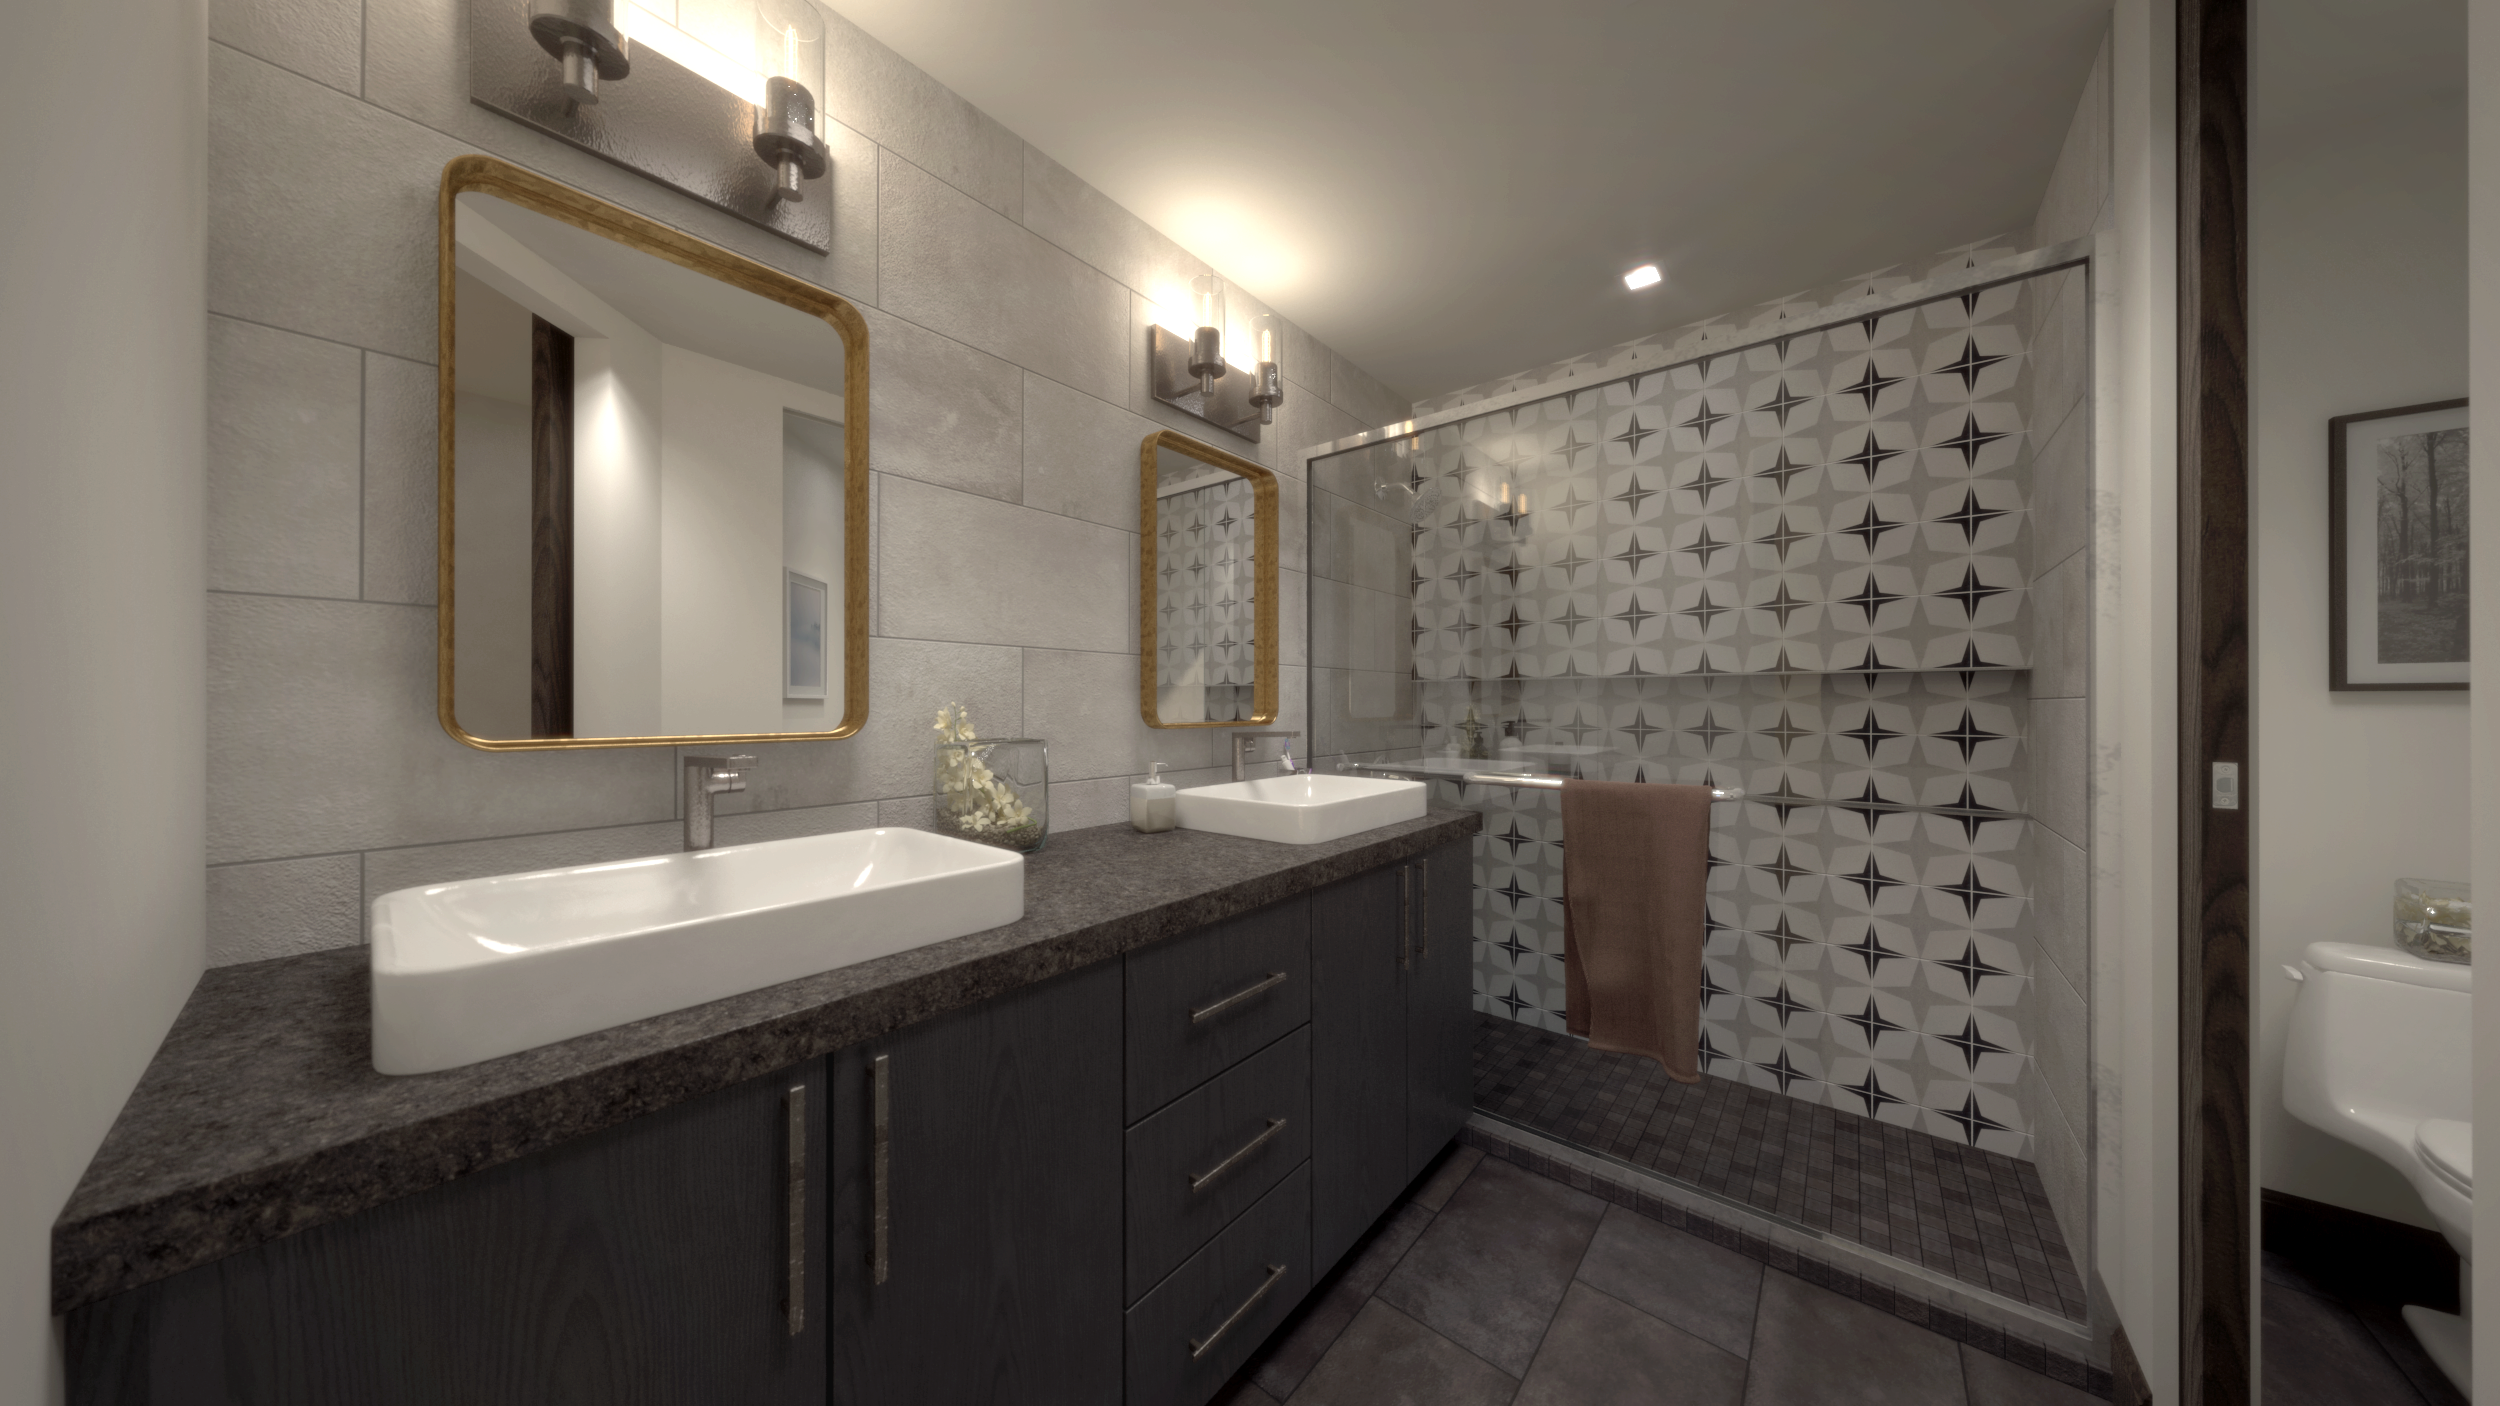 Artisan on Roosevelt interior finishes package 2 rendering C